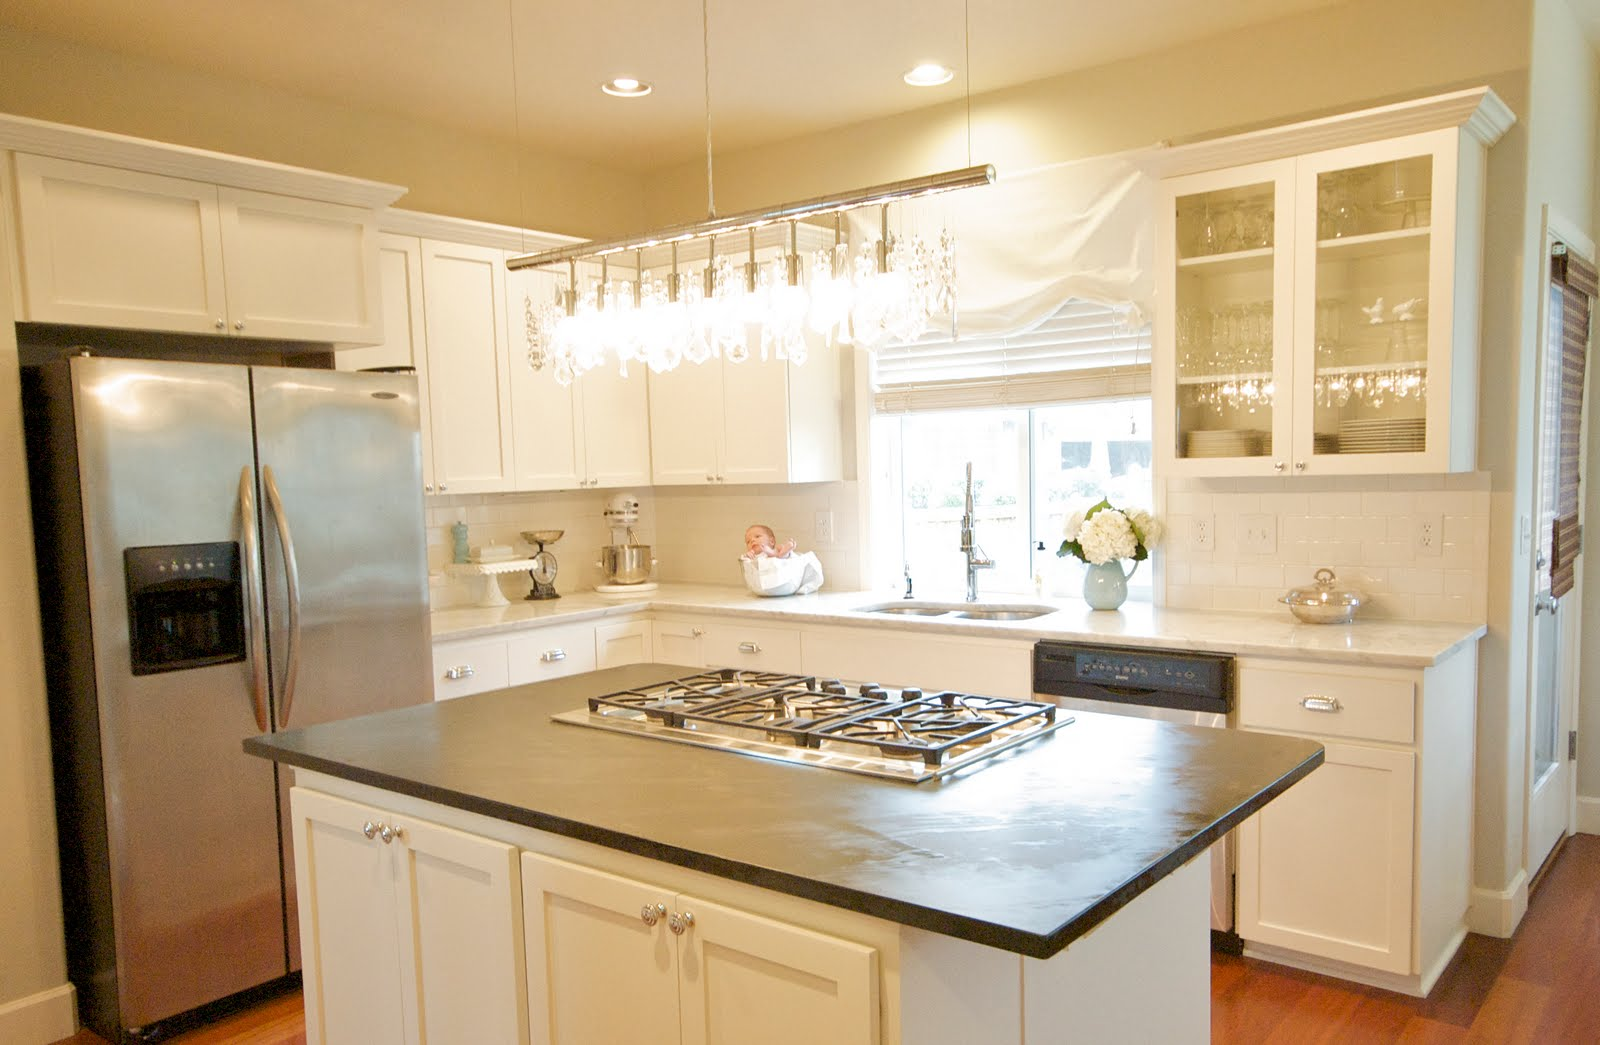 dreaming of white cabinets white kitchen cabinets Dreaming of White Cabinets